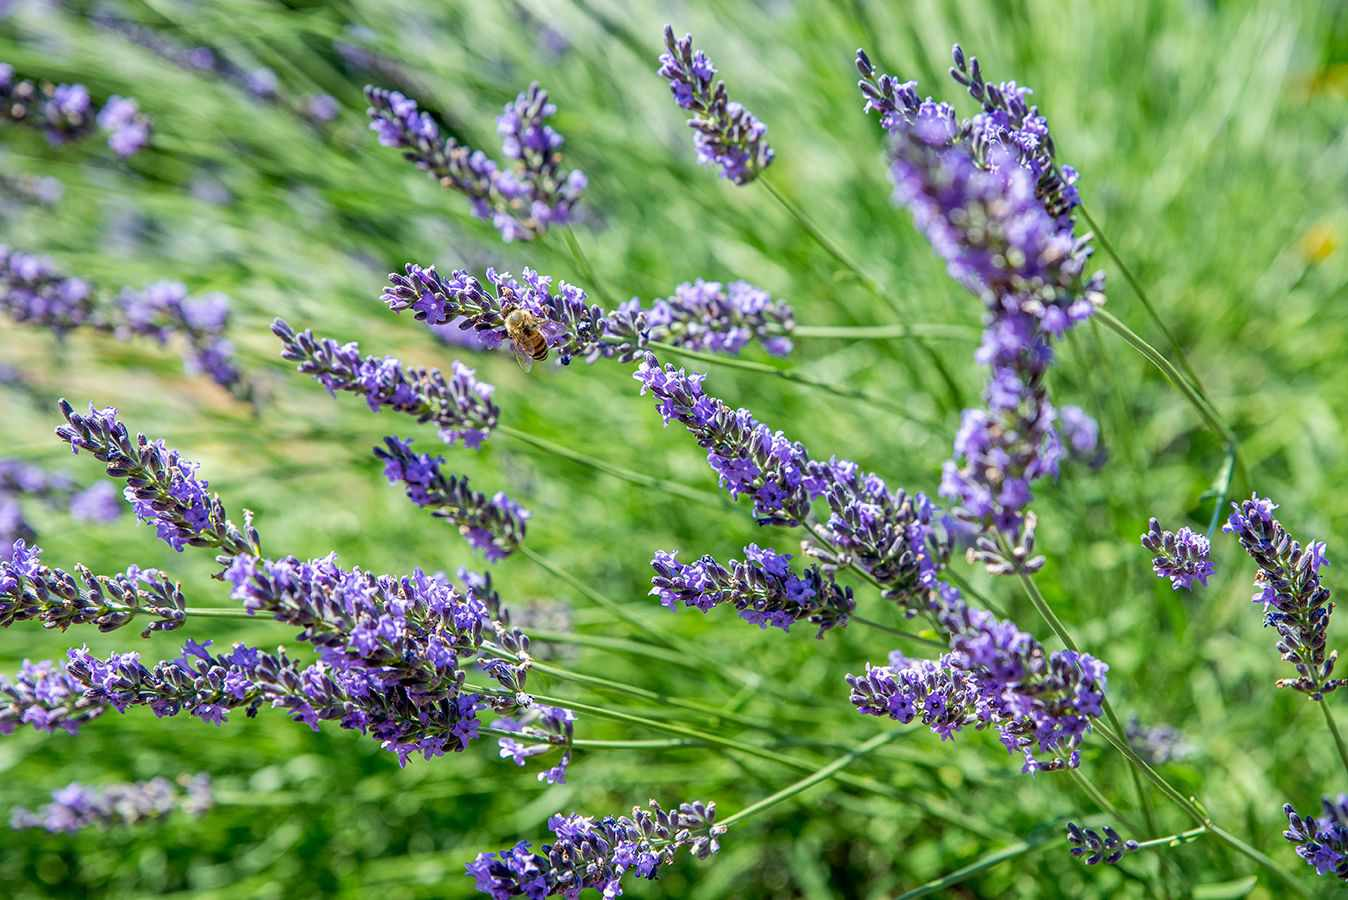 Lavender plant with small purple flowers on end of thin stems